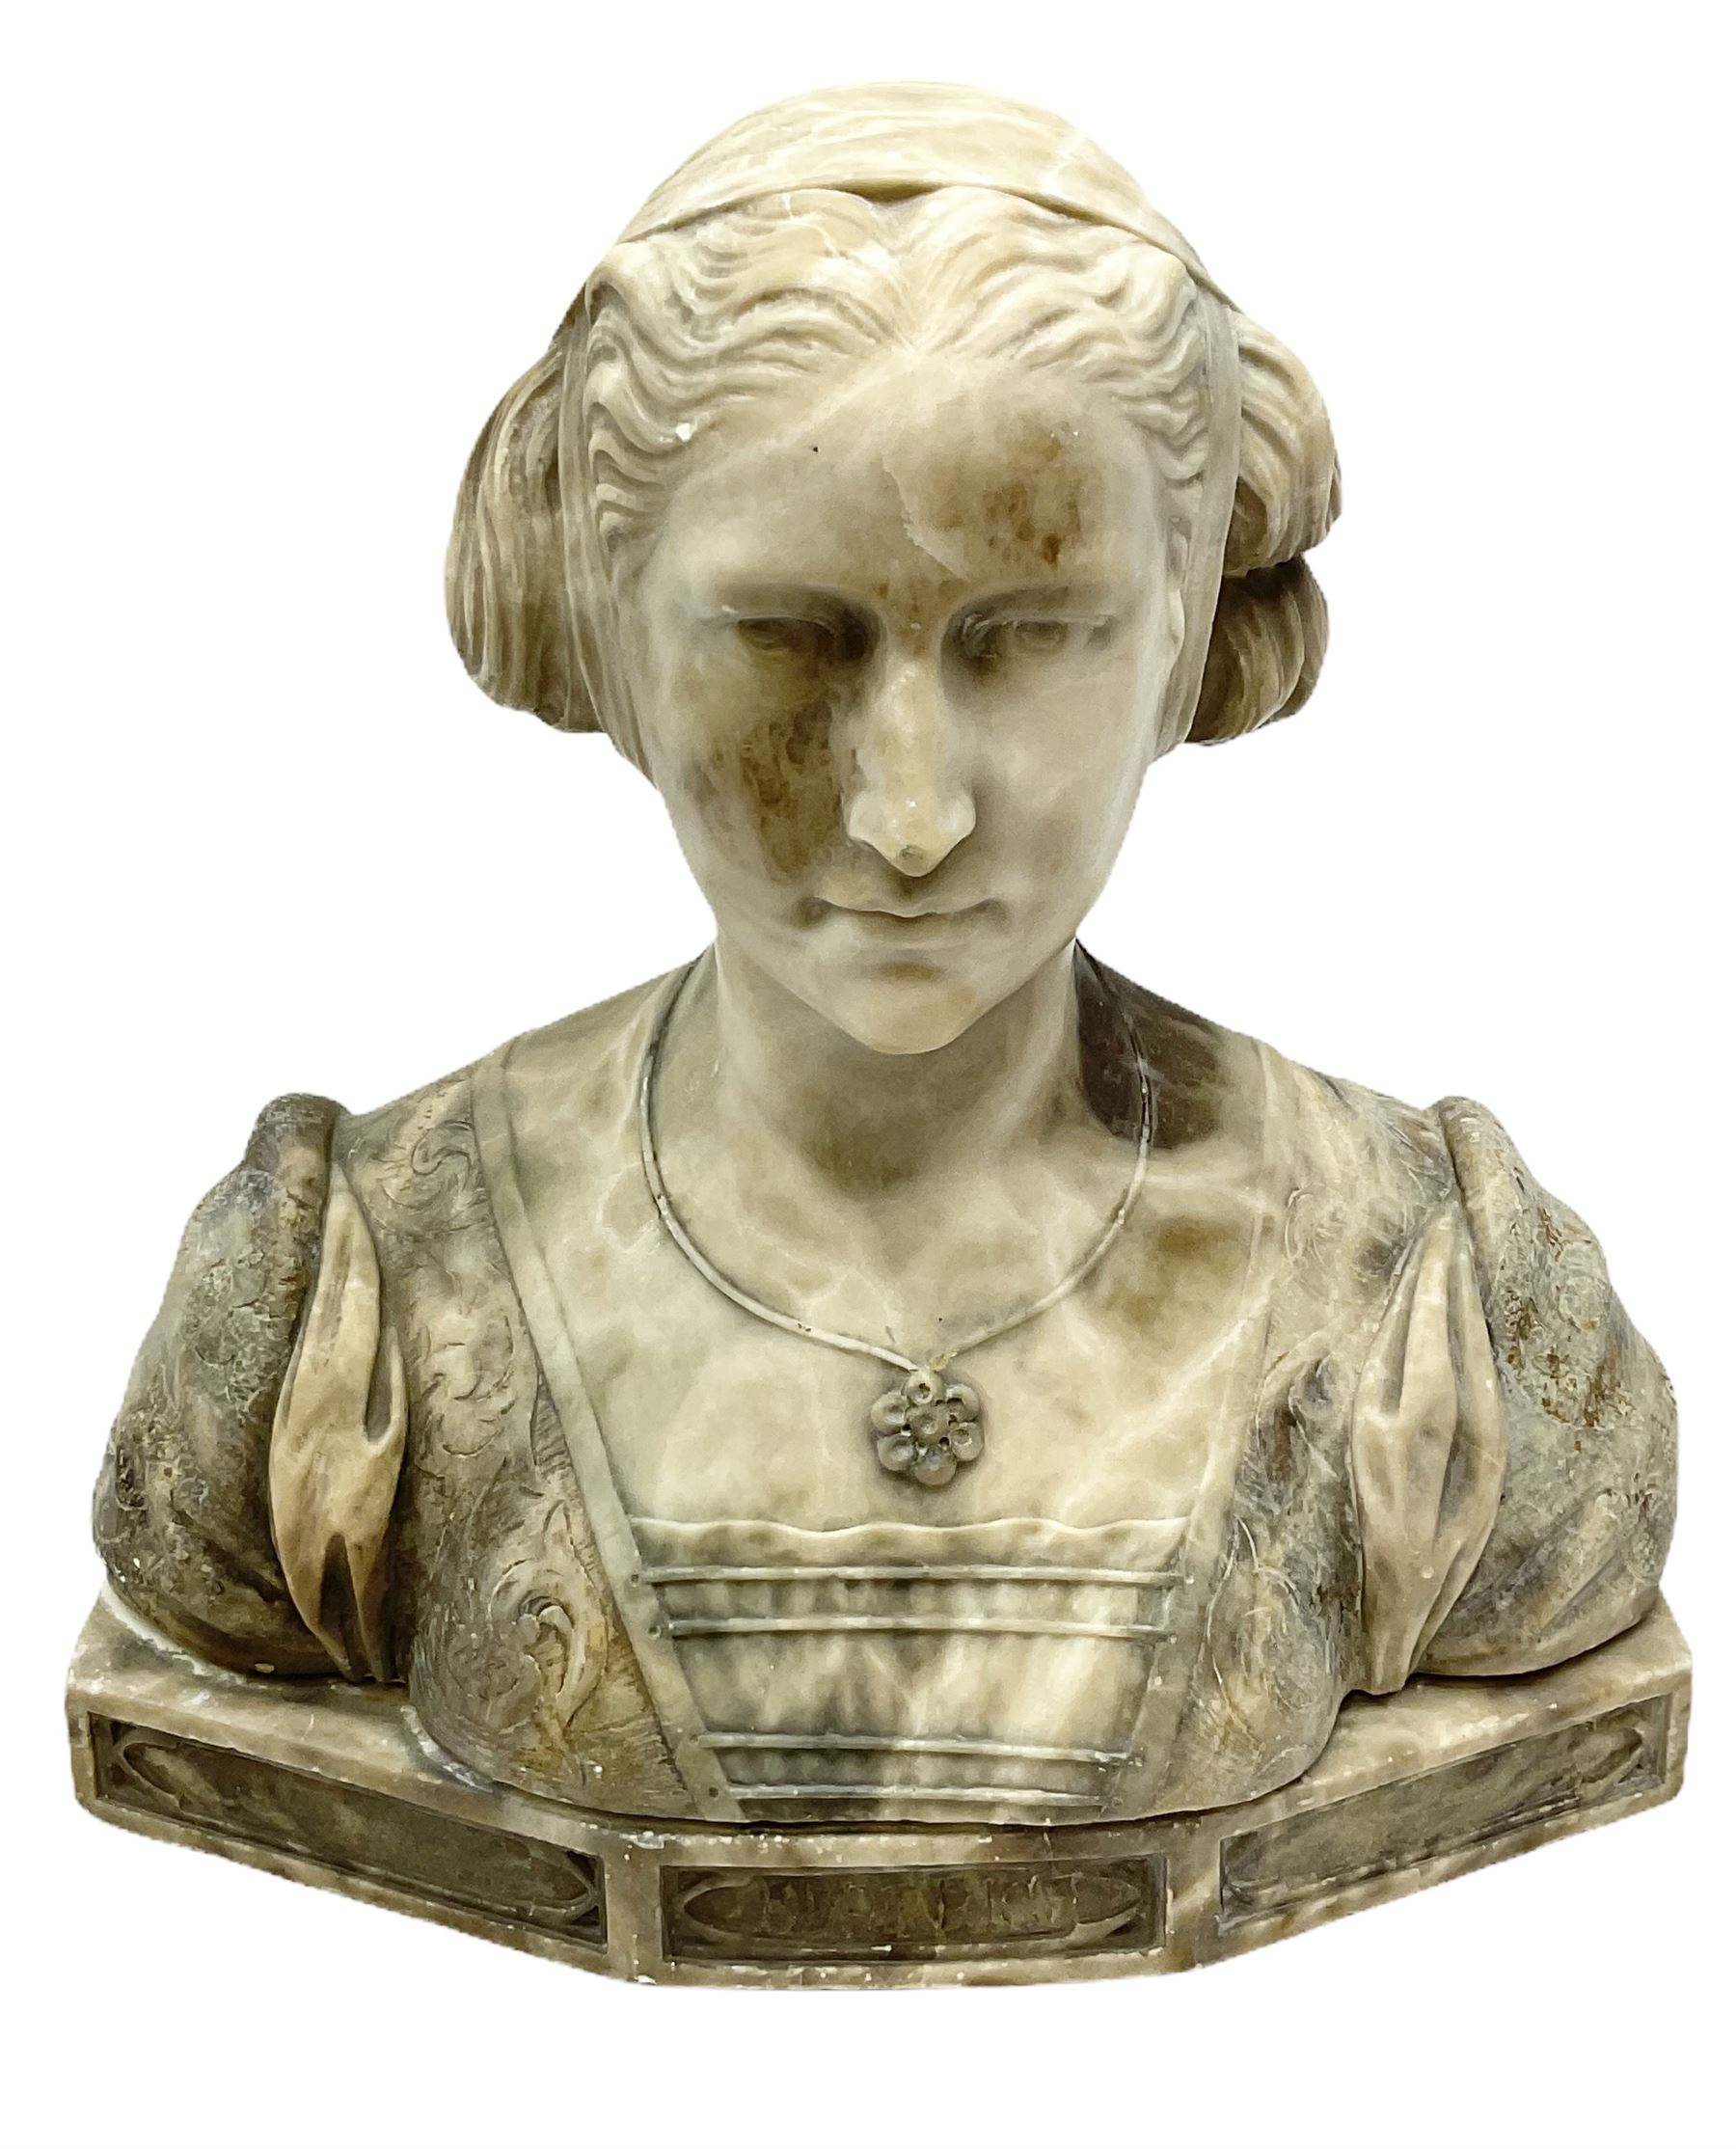 Carved marble bust modelled as a female figure